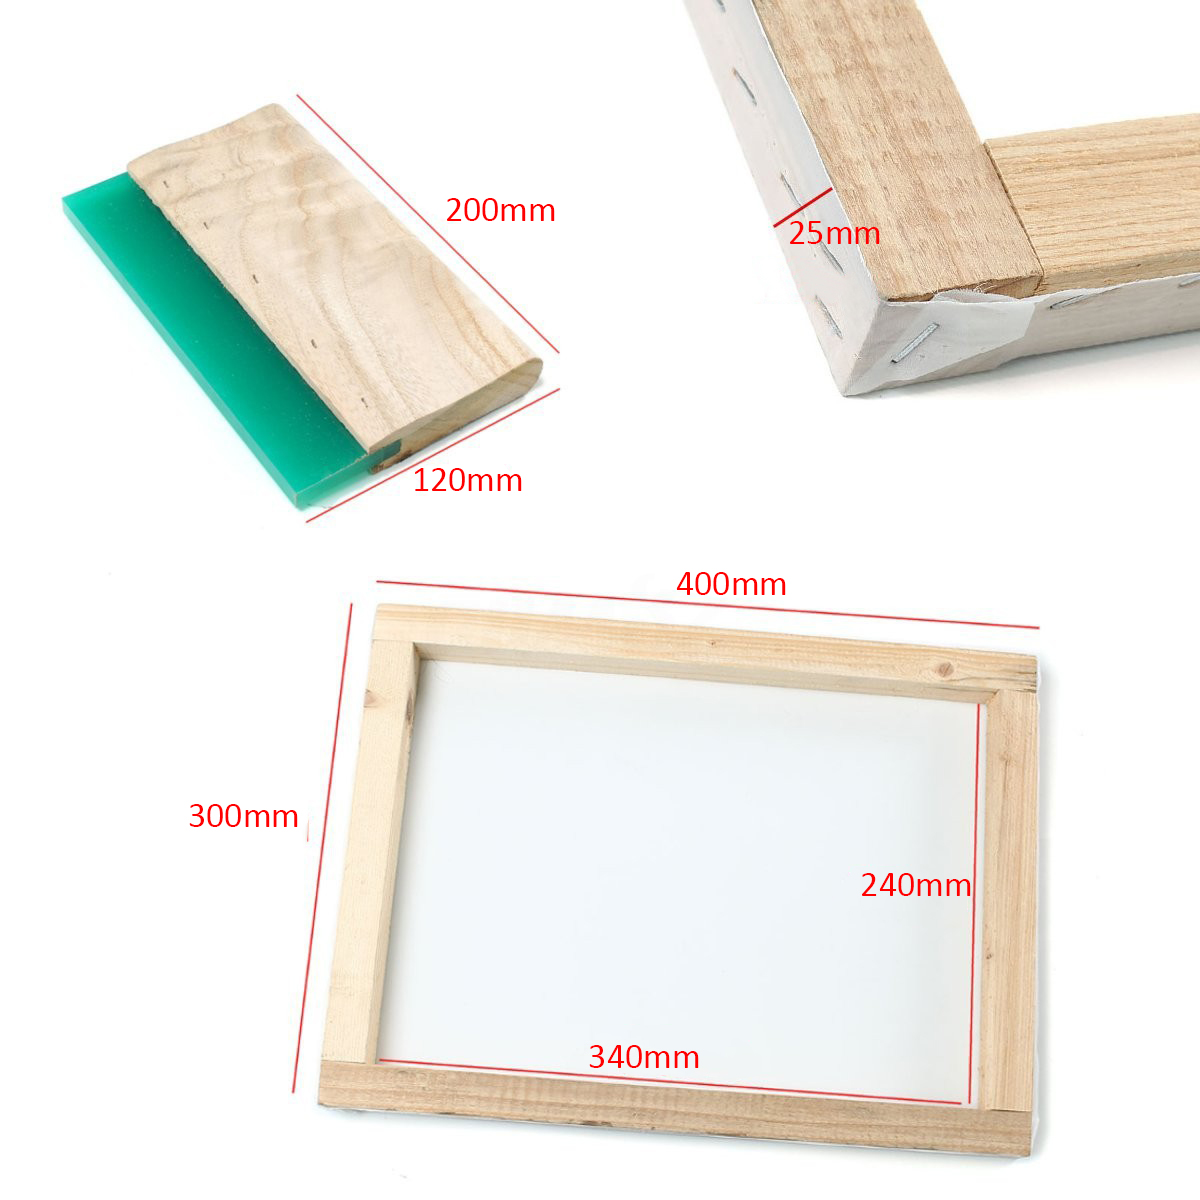 43T Mesh & 8 Wearproof Wooden Squeegee DIY Printing Blade Ink Scraper With Silk Screen Printing Frame 300*400mm Mayitr 300 aaron printing doctor blade for printing machinery w30 40mmxt0 2mmxl100m